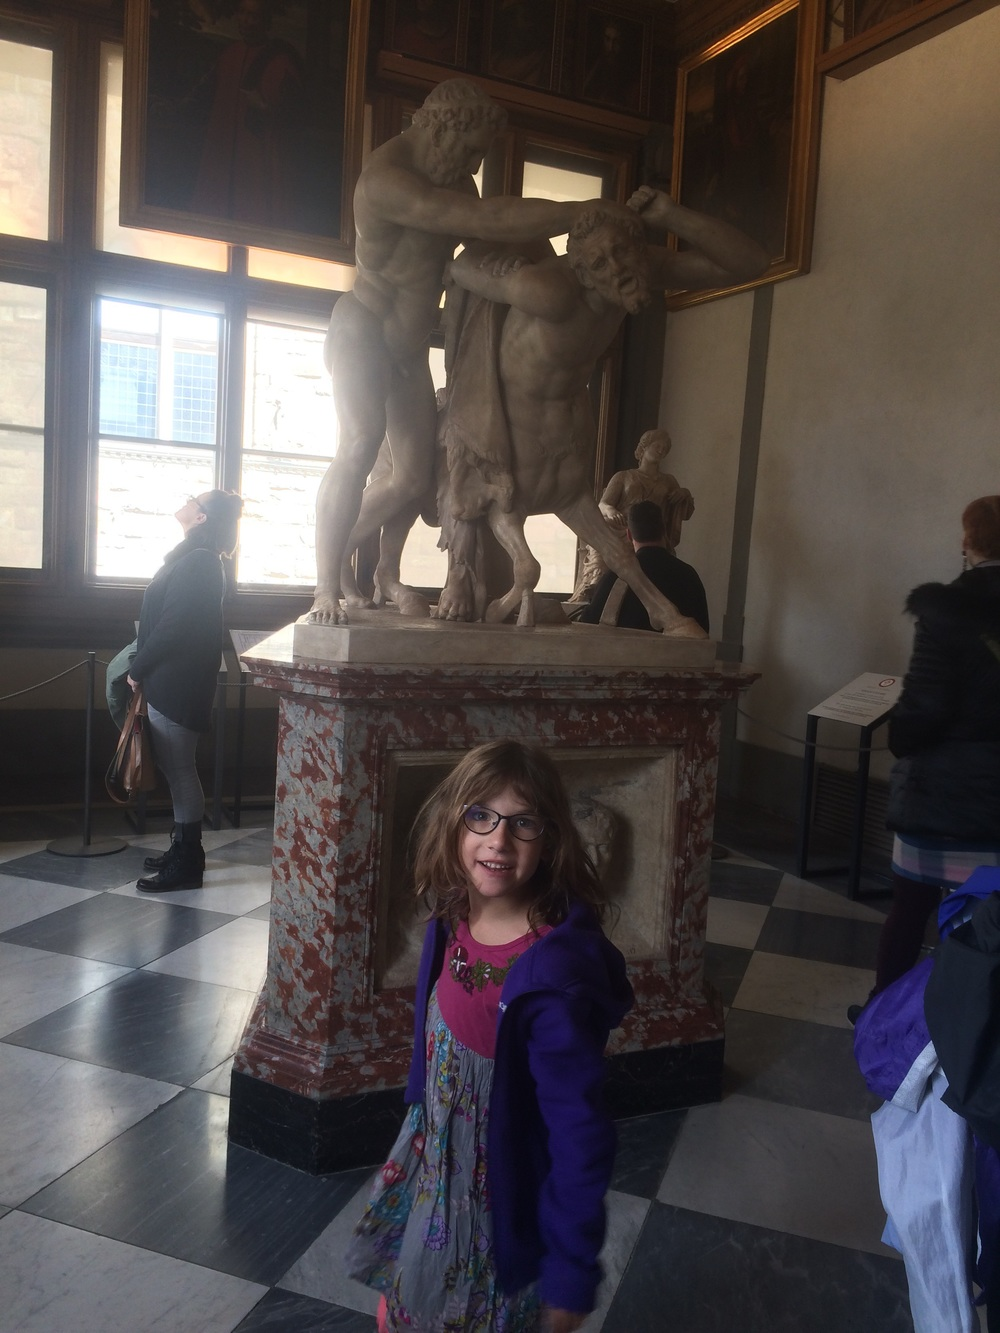 Amy showing me a Centaur, the symbol of Sagittarius (Amy's astrological sign).